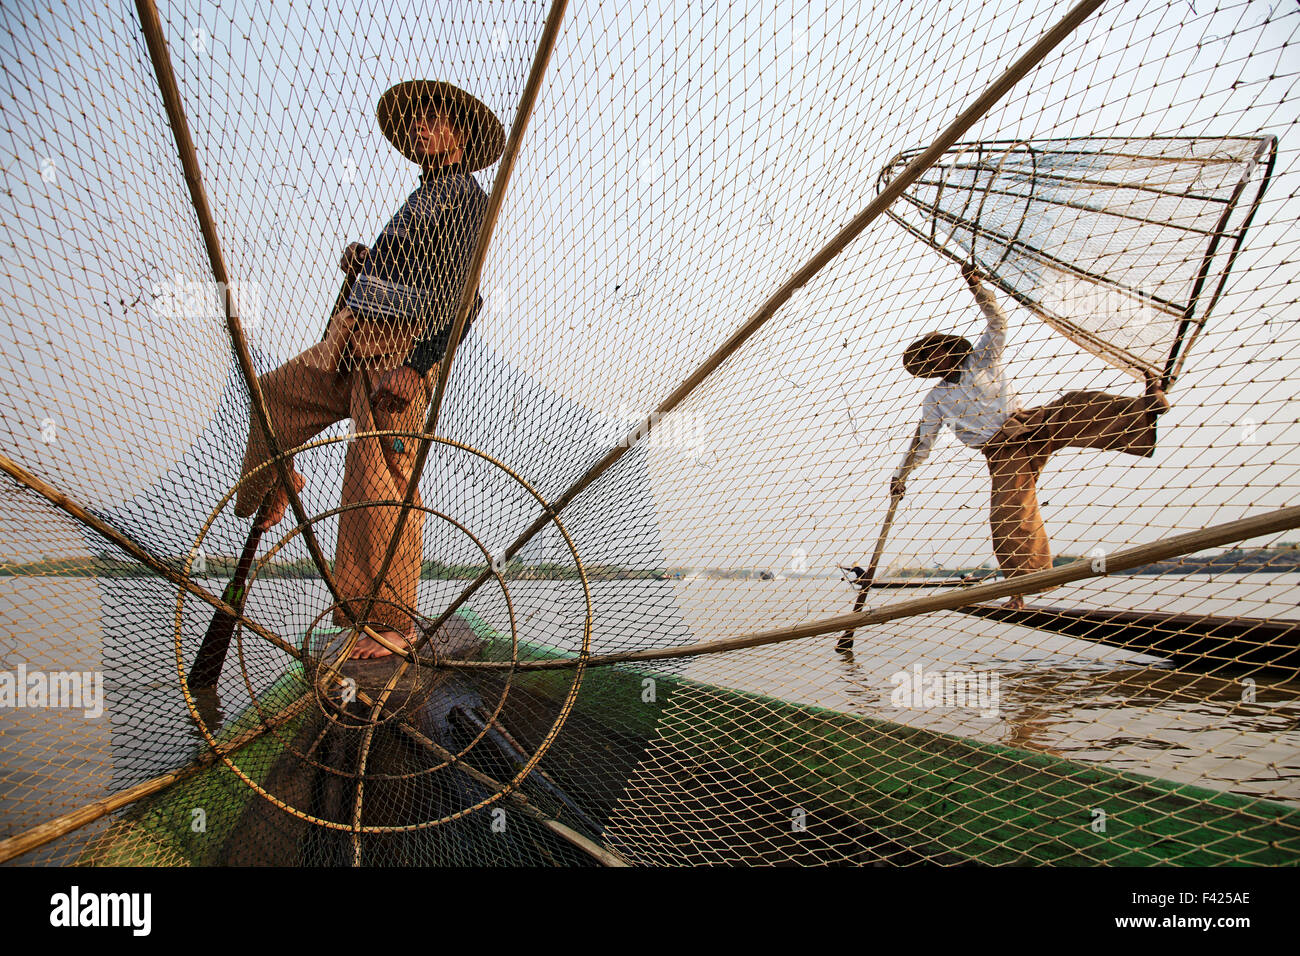 Fishermen on Inle Lake in Myanmar. - Stock Image